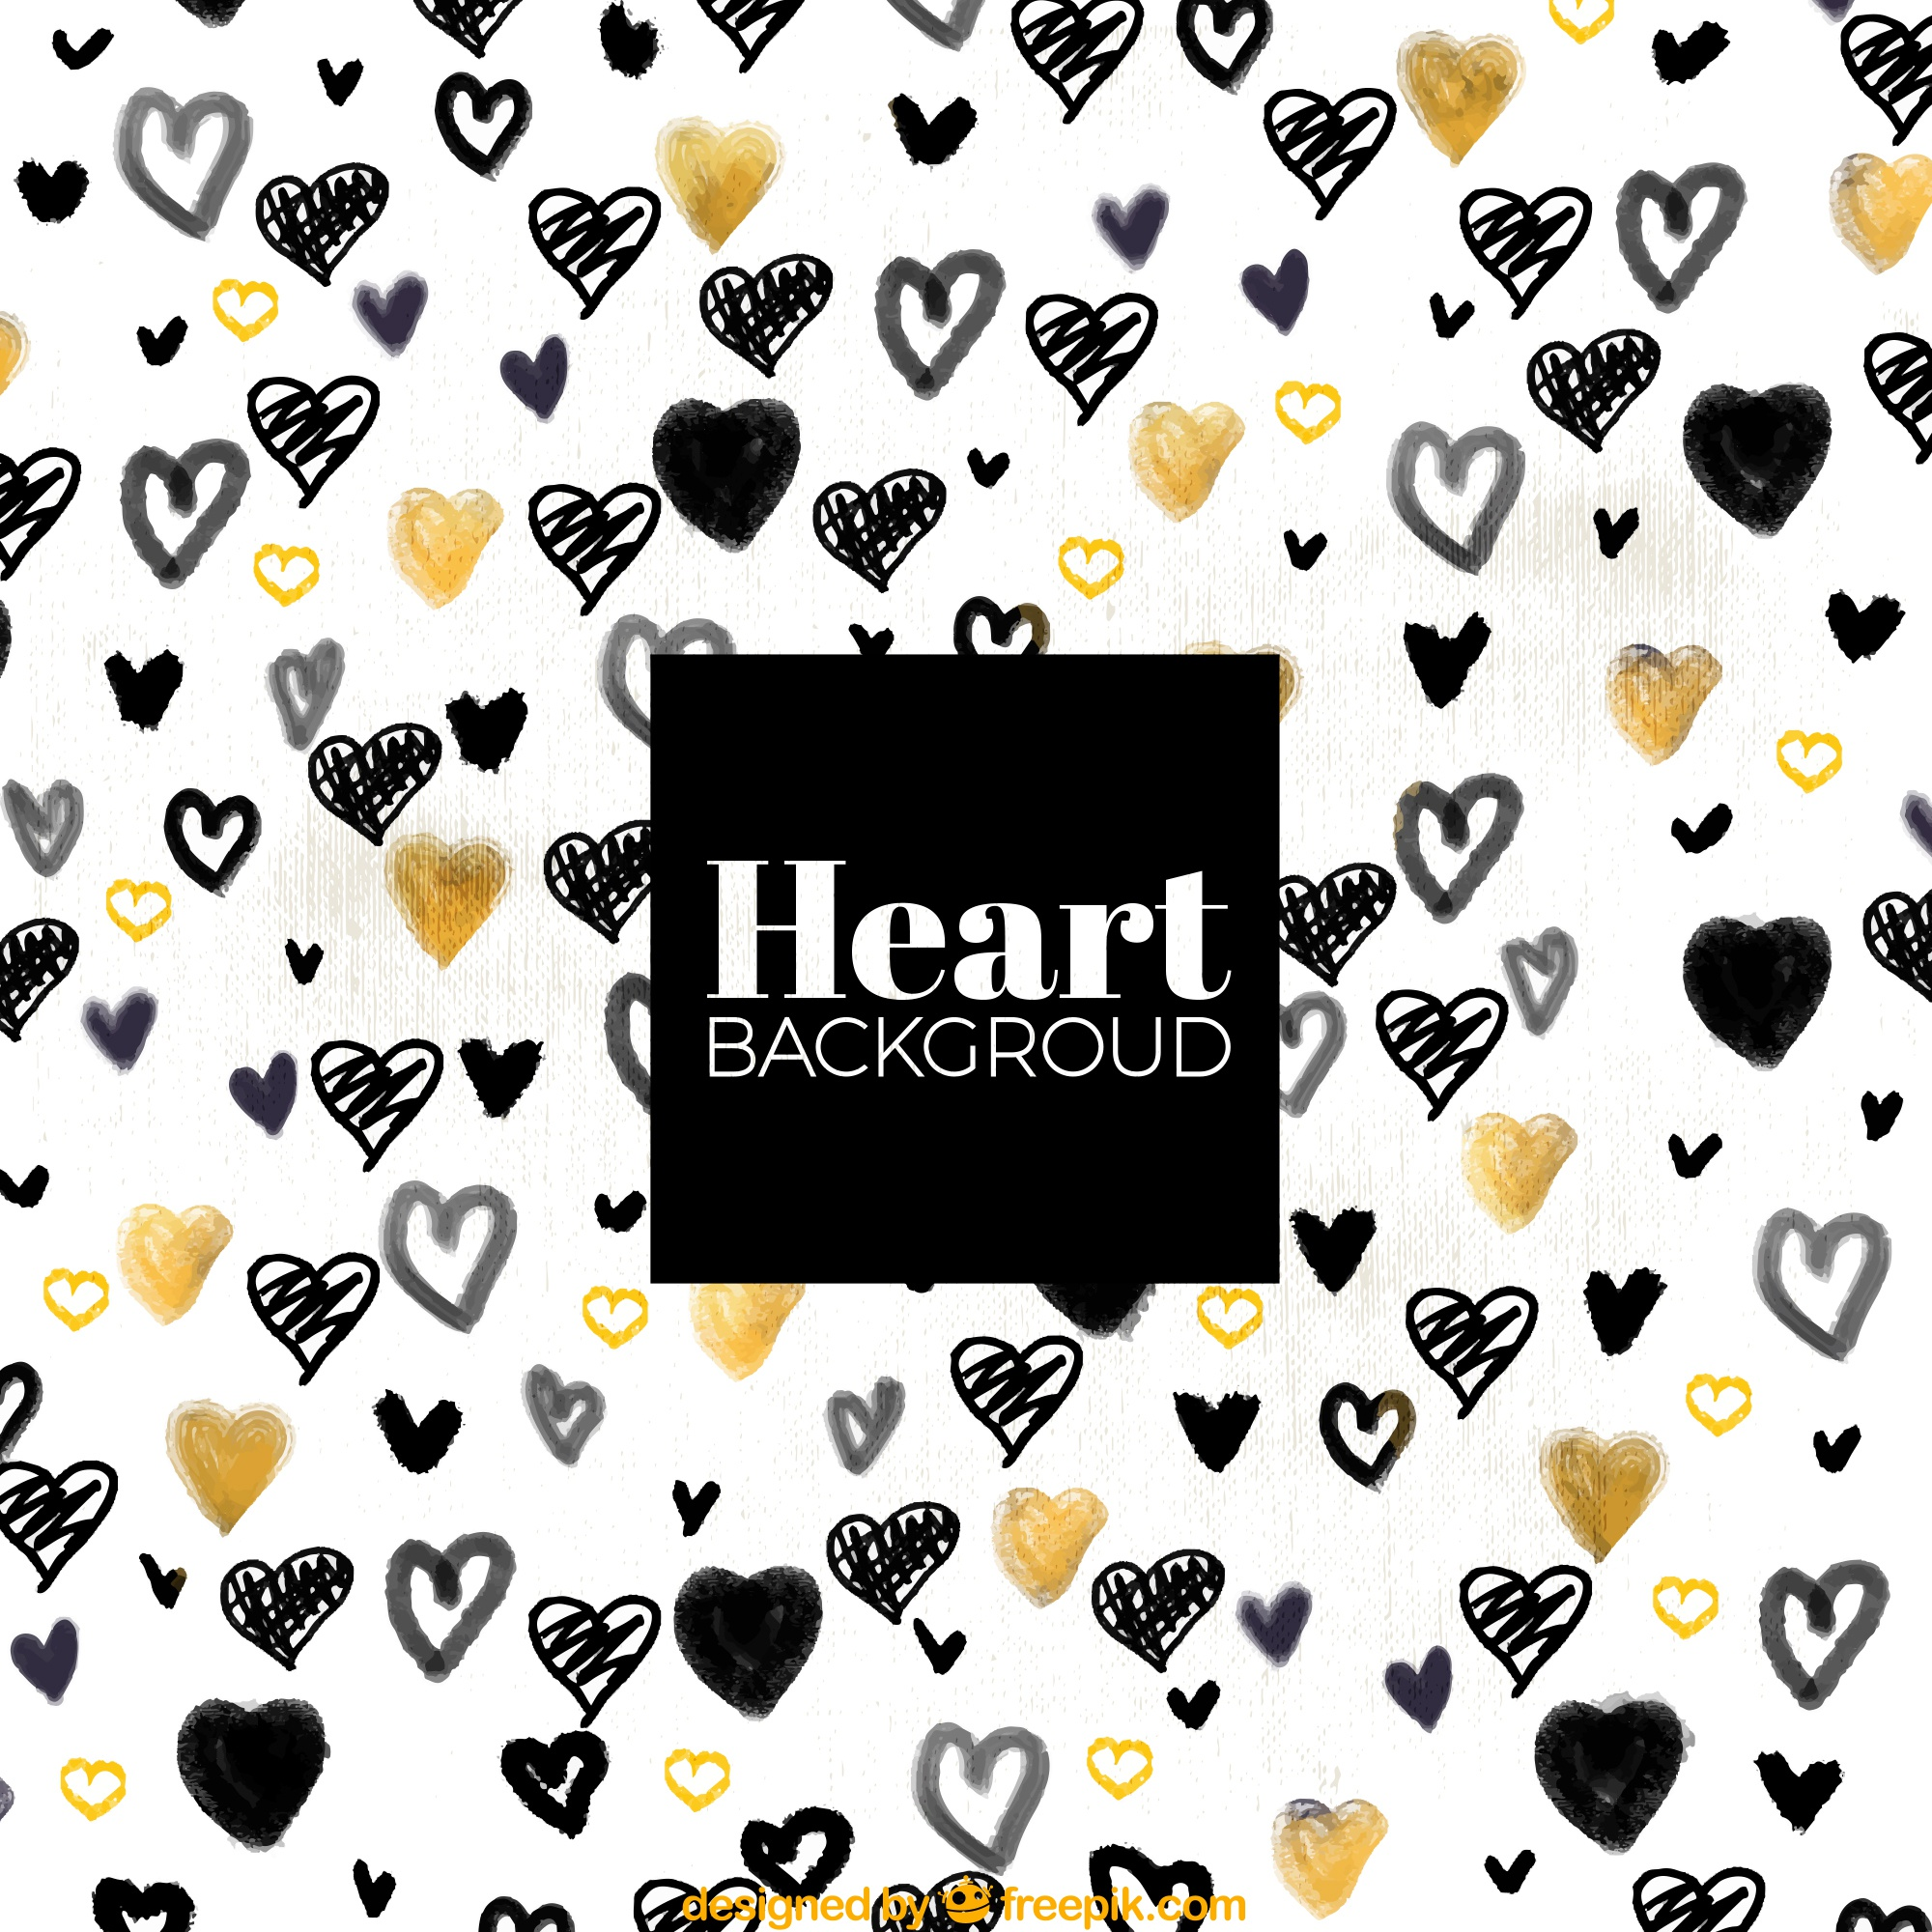 Black and golden hearts background